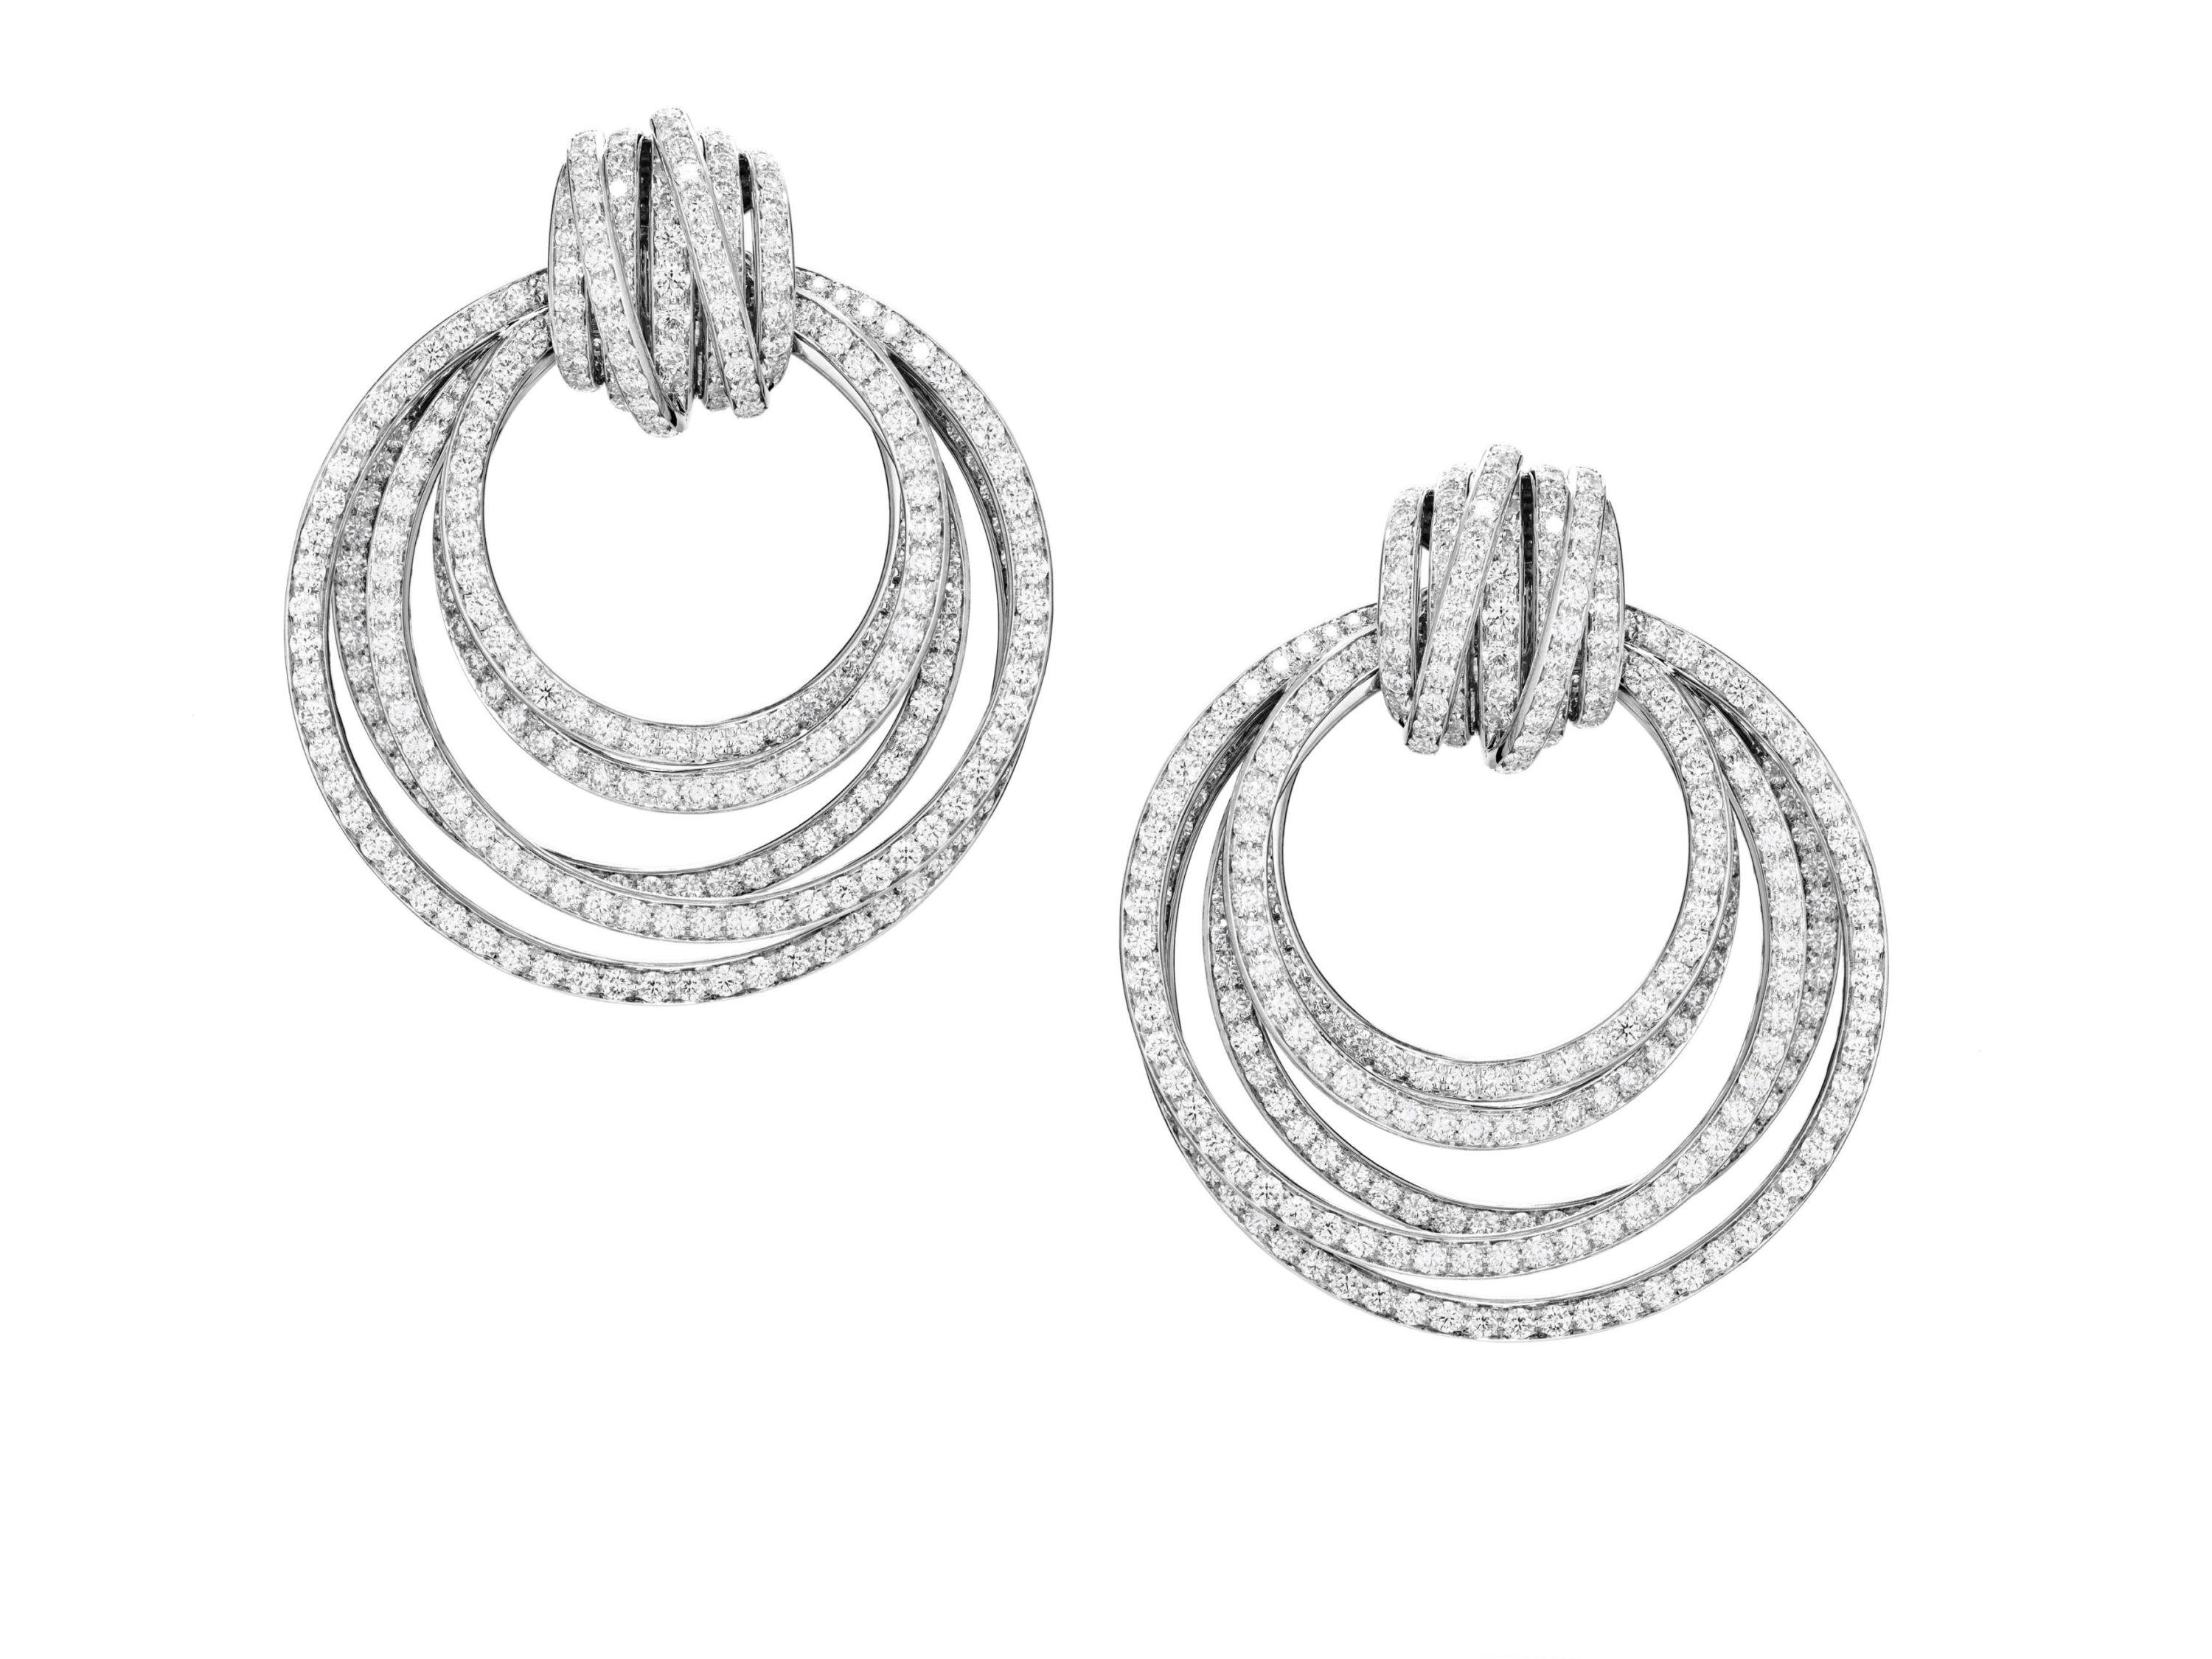 allegra_earrings_14072_01 p